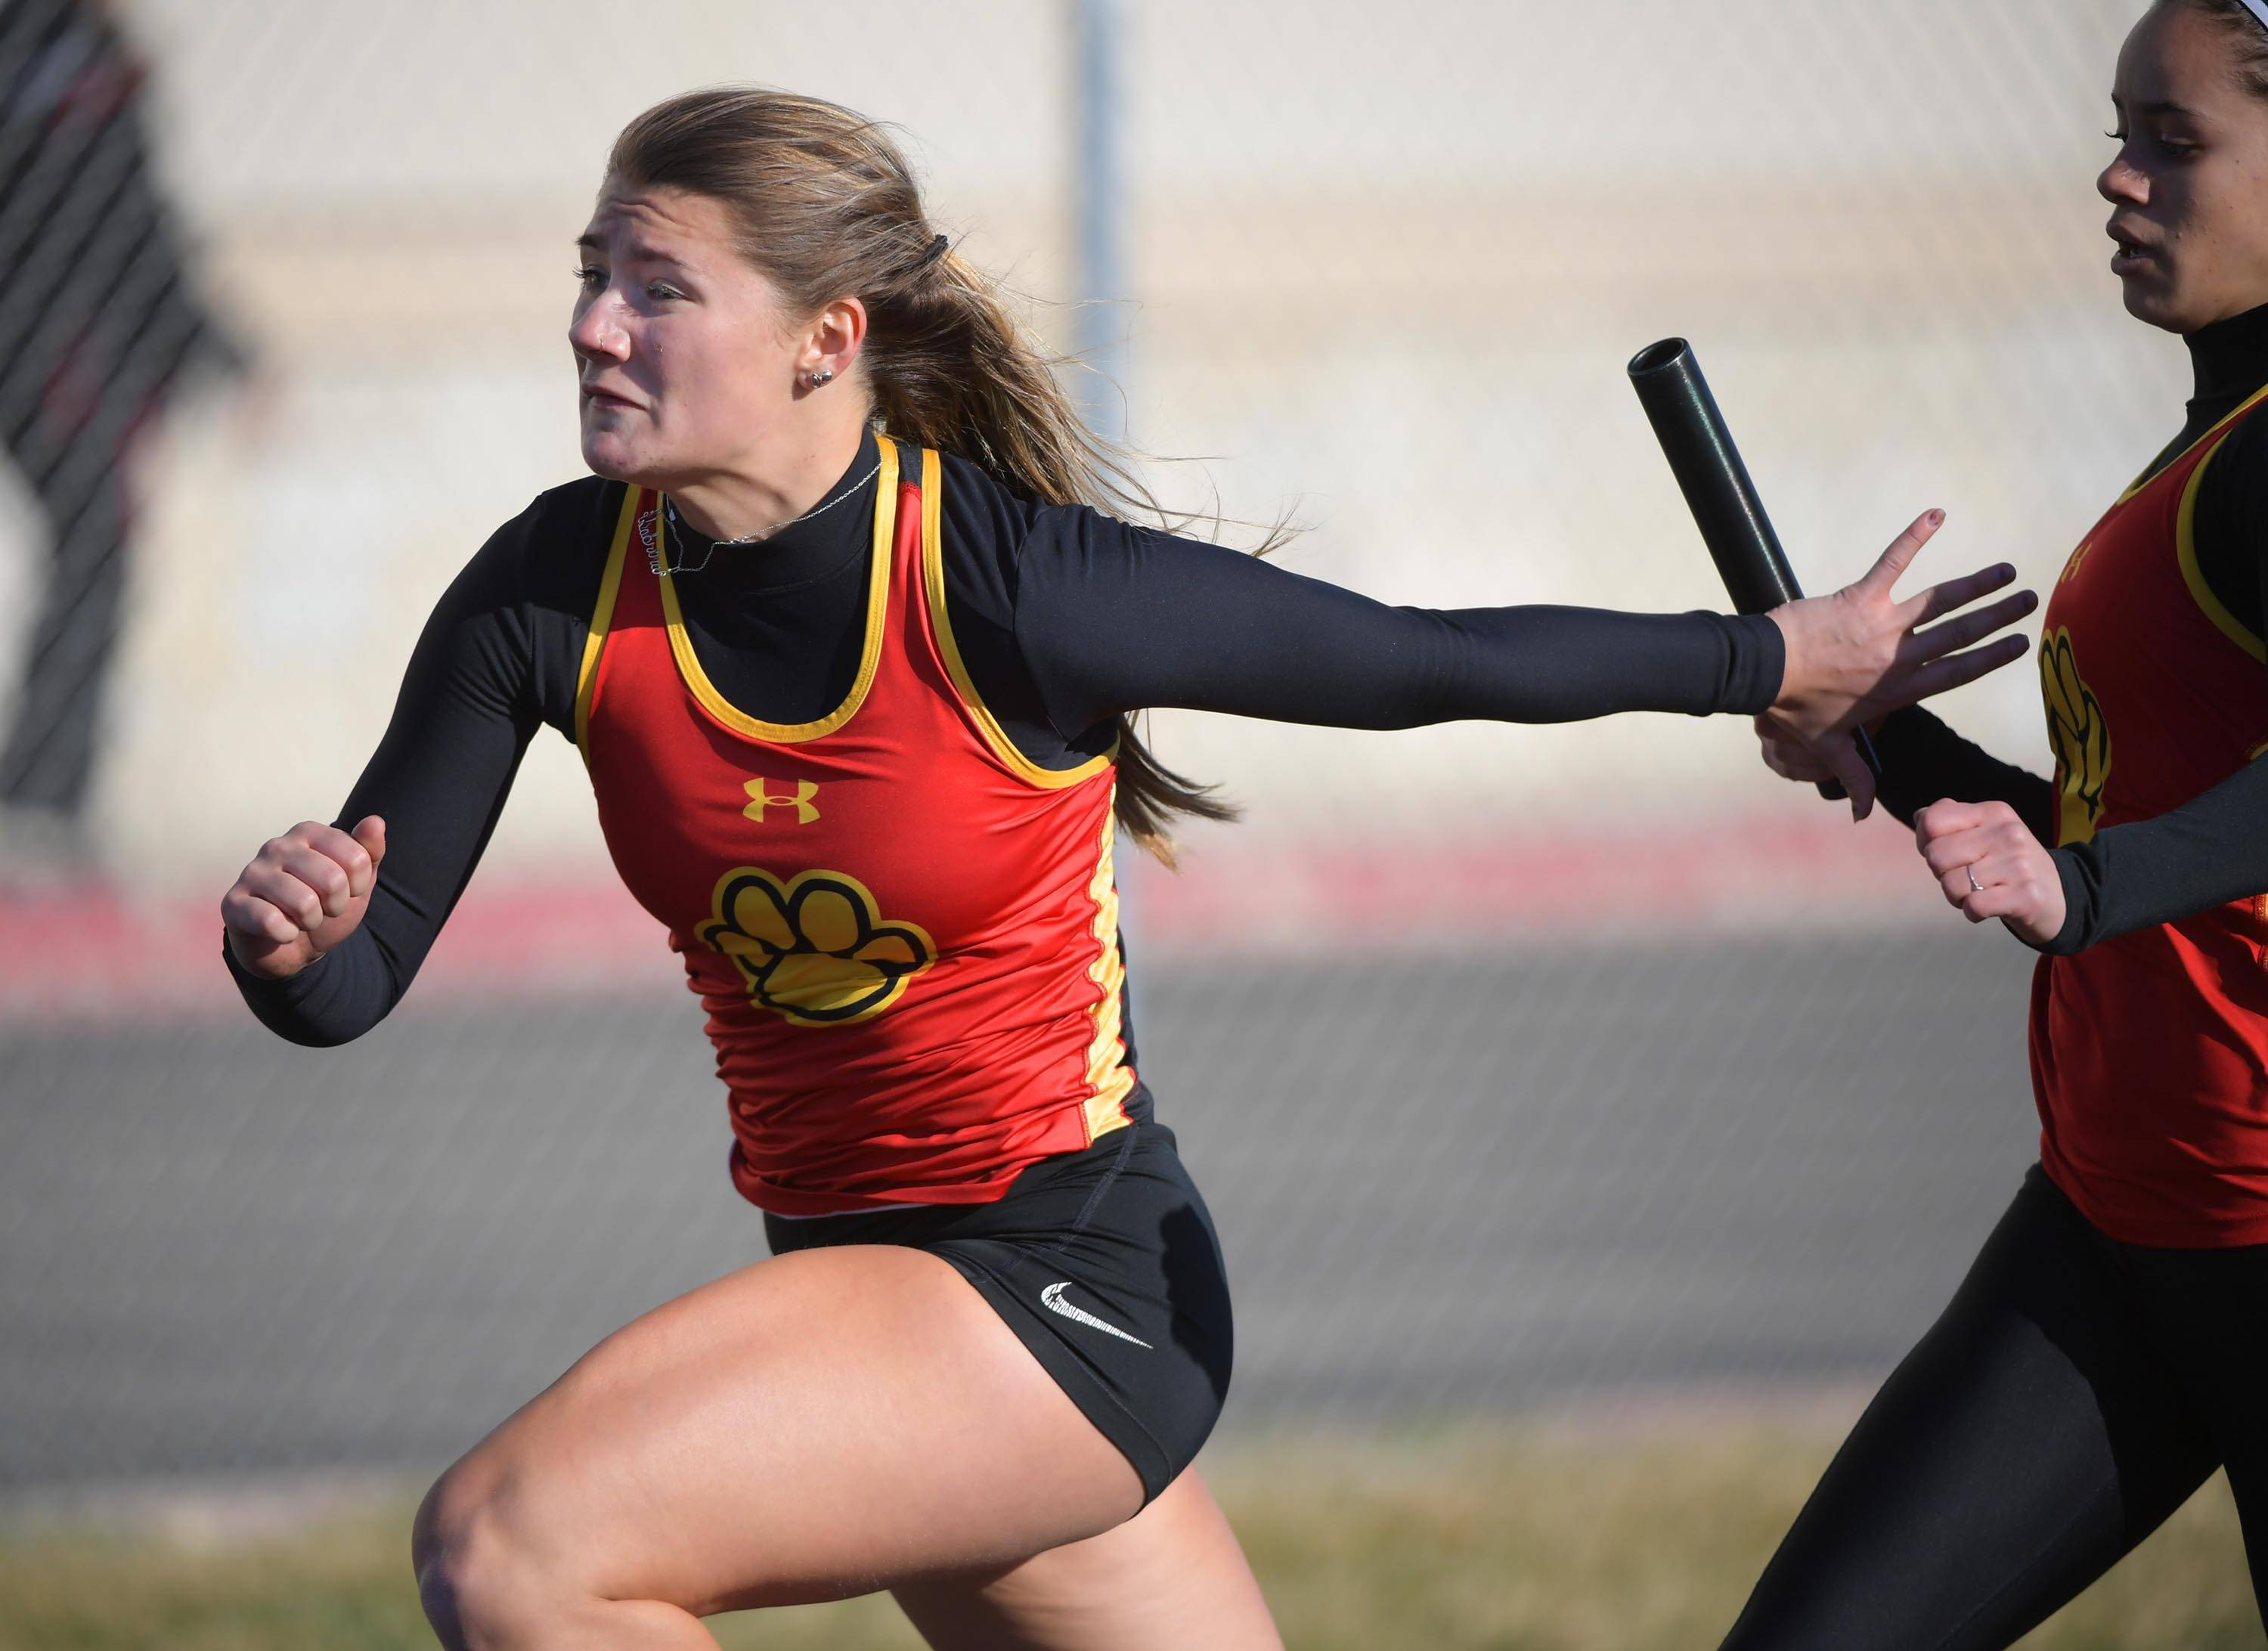 Batavia's Sabrina Schlenker reaches for the baton from teammate Davinia Wilson in the first exchange of the 400-meter relay Thursday at the Batavia girls track invitational.